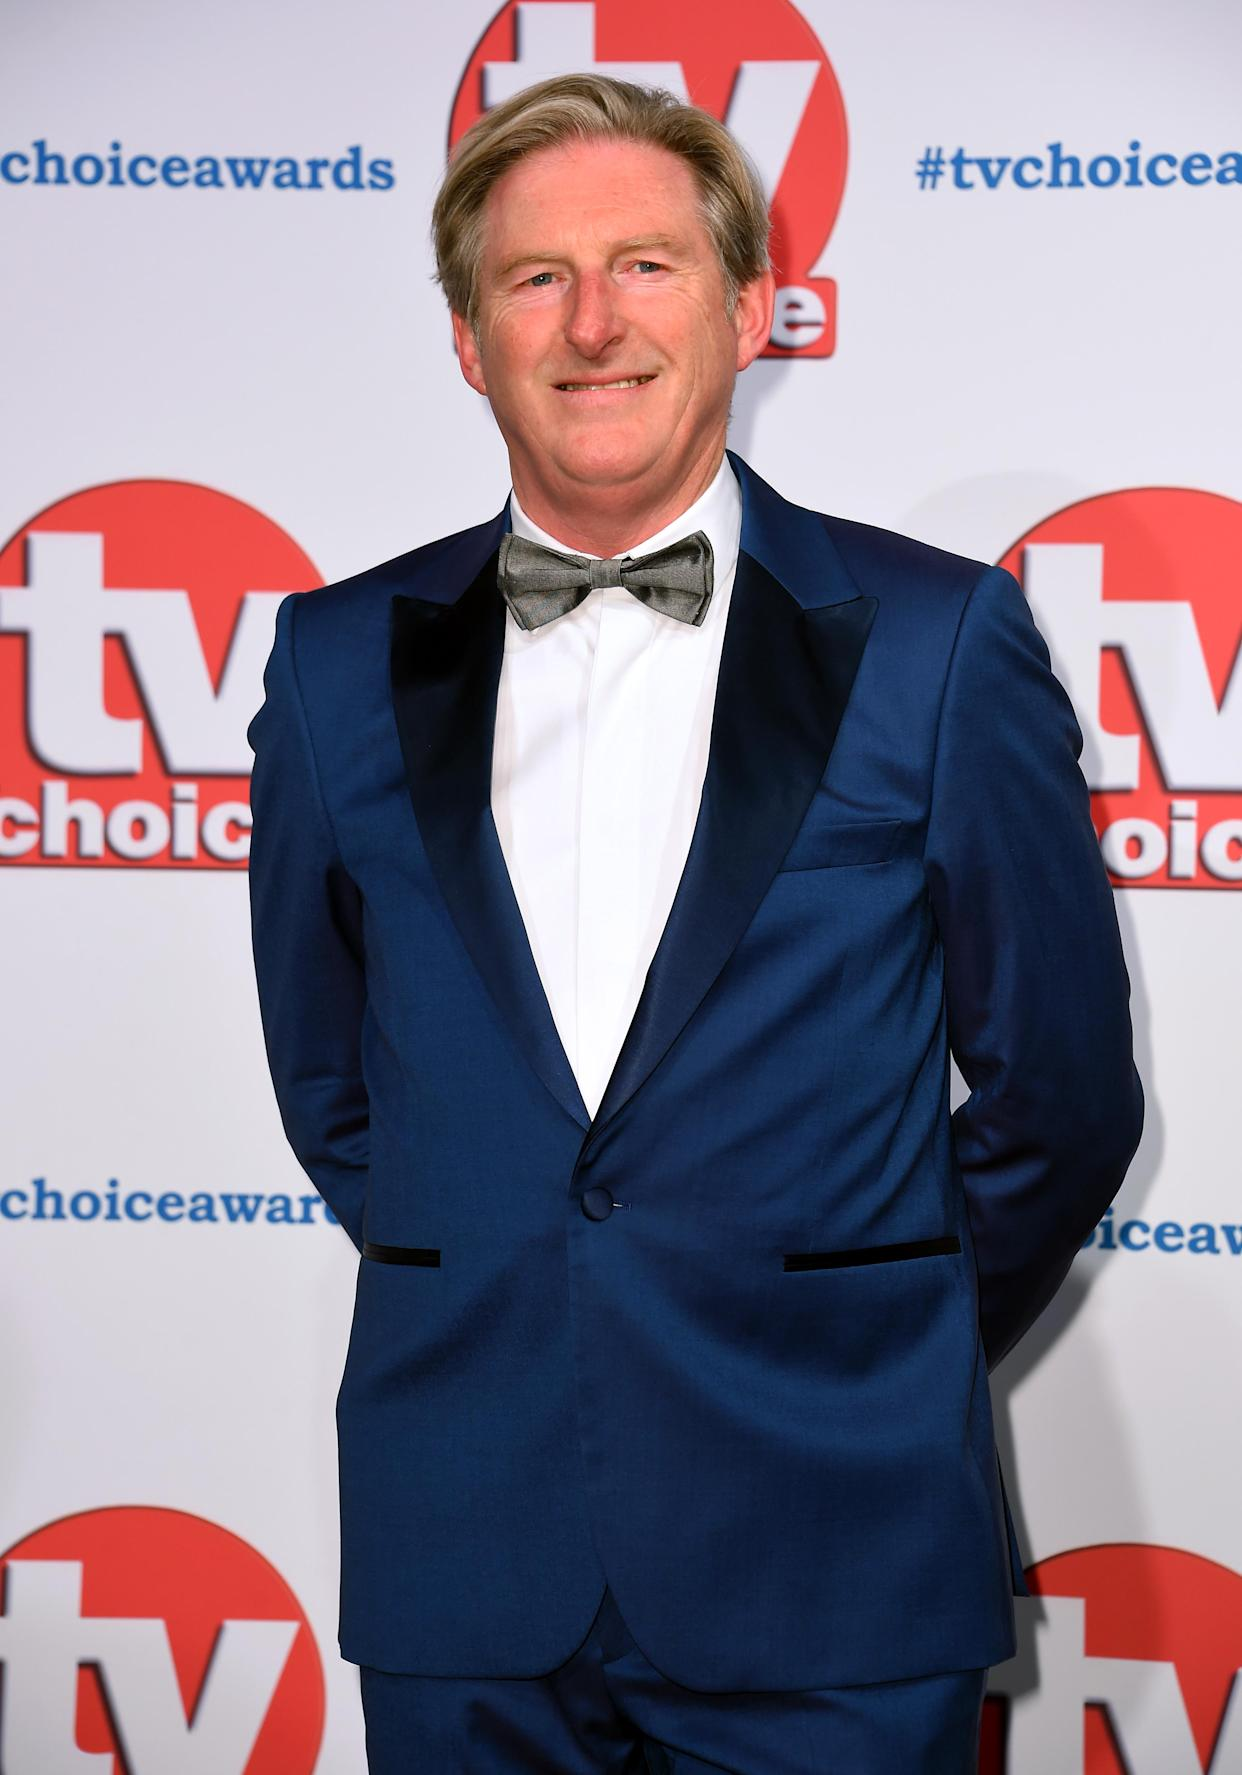 Adrian Dunbar attending the TV Choice Awards held at the Hilton Hotel, Park Lane, London. (Photo by Matt Crossick/PA Images via Getty Images)